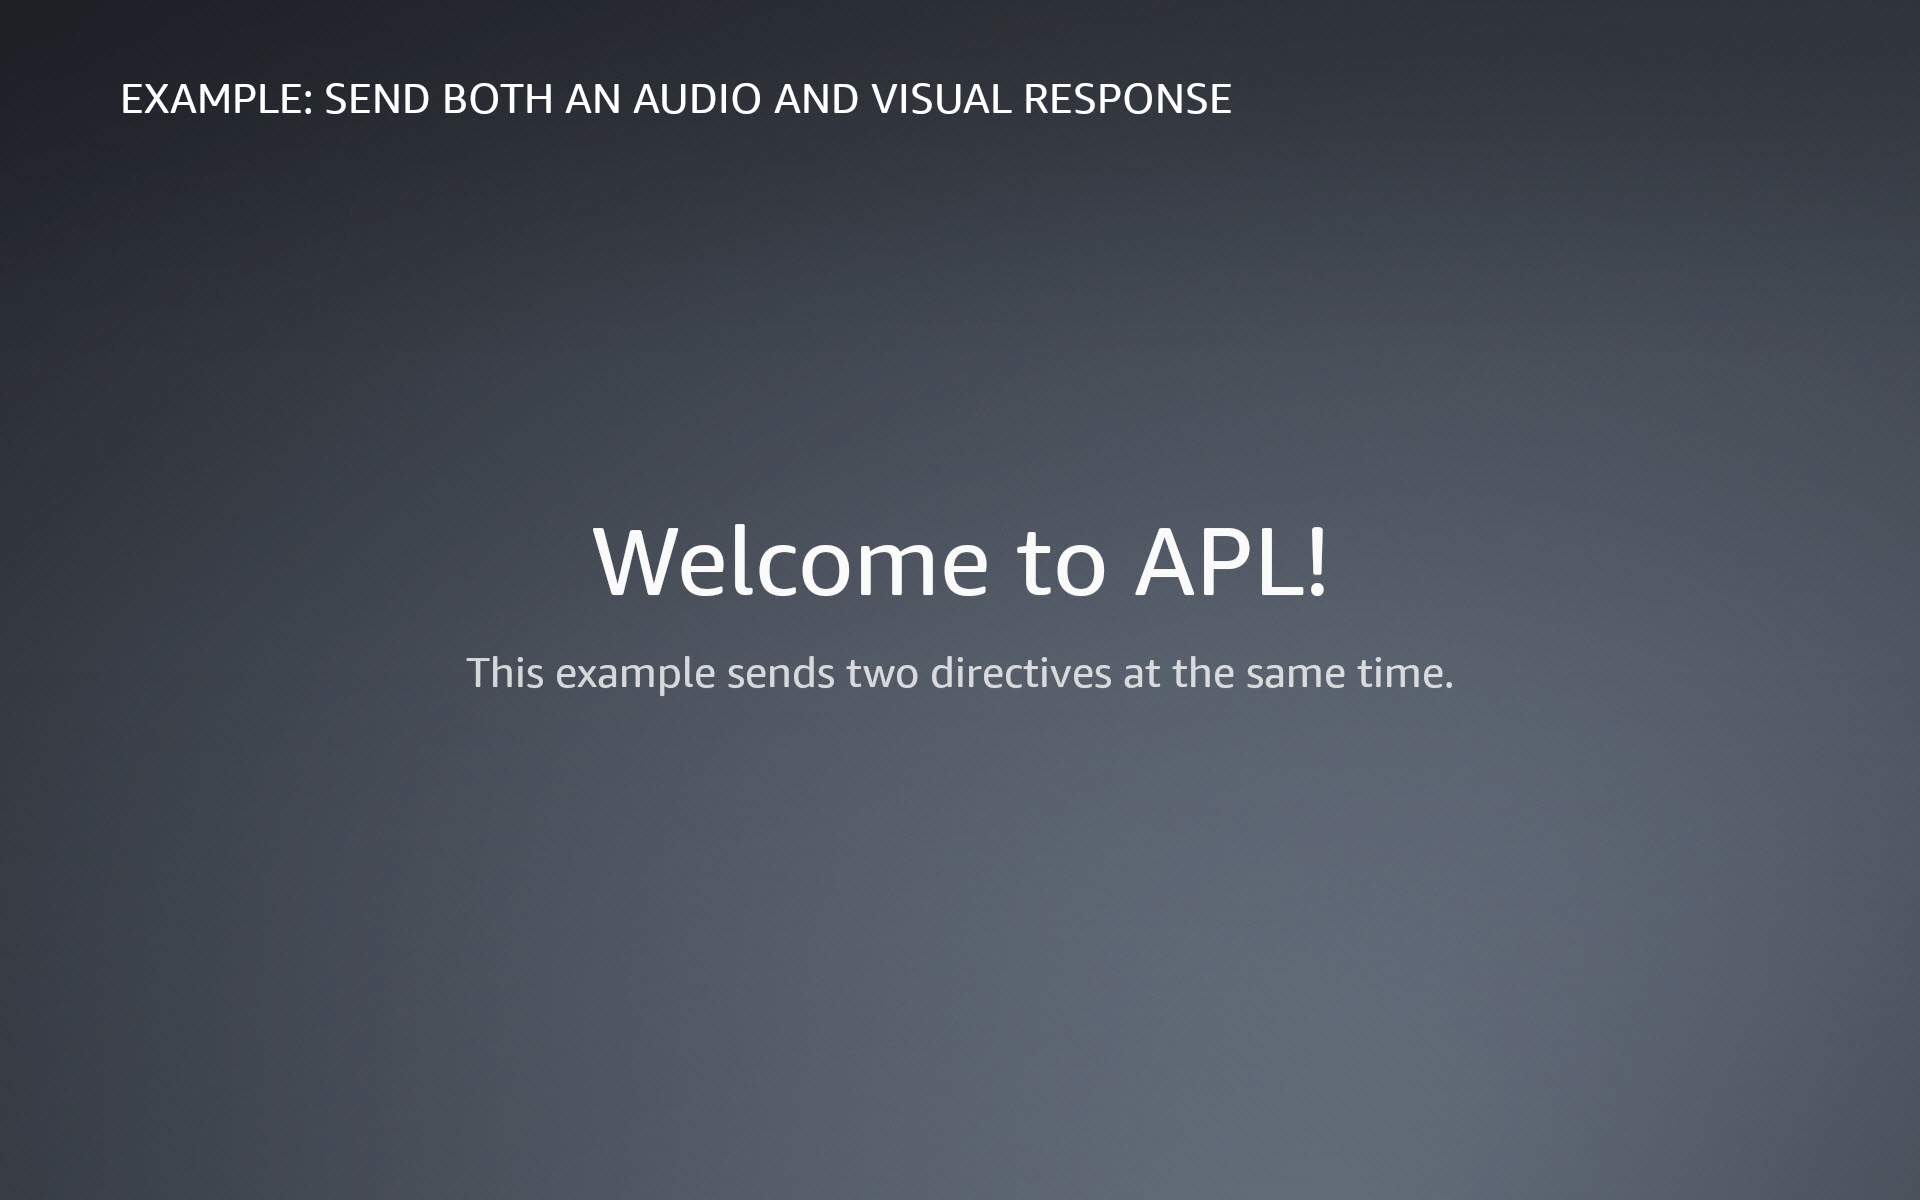 An APL document that displays a welcome message